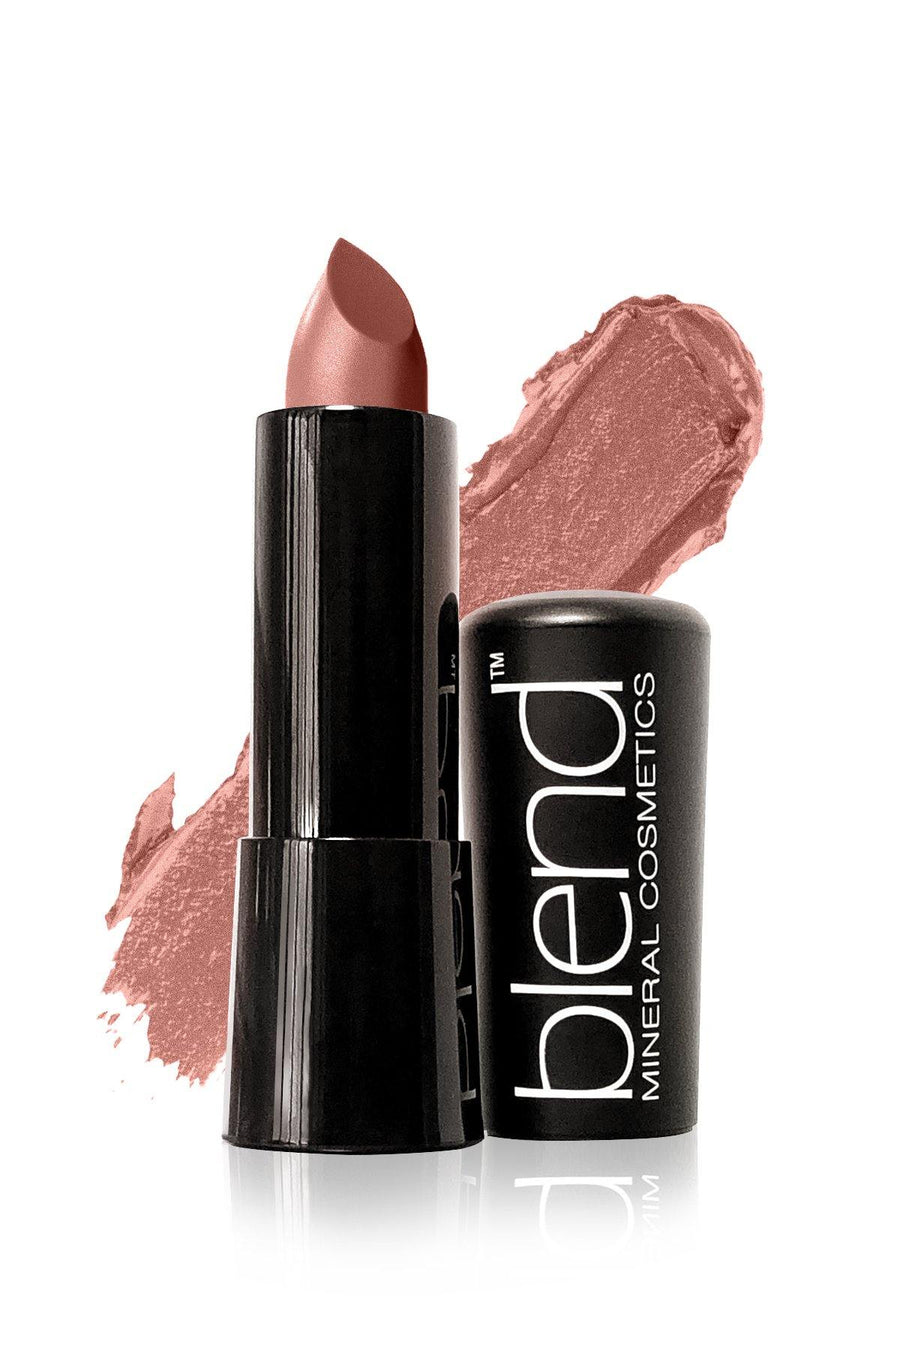 Lipstick #2 - Nude Pink - Blend Mineral Cosmetics